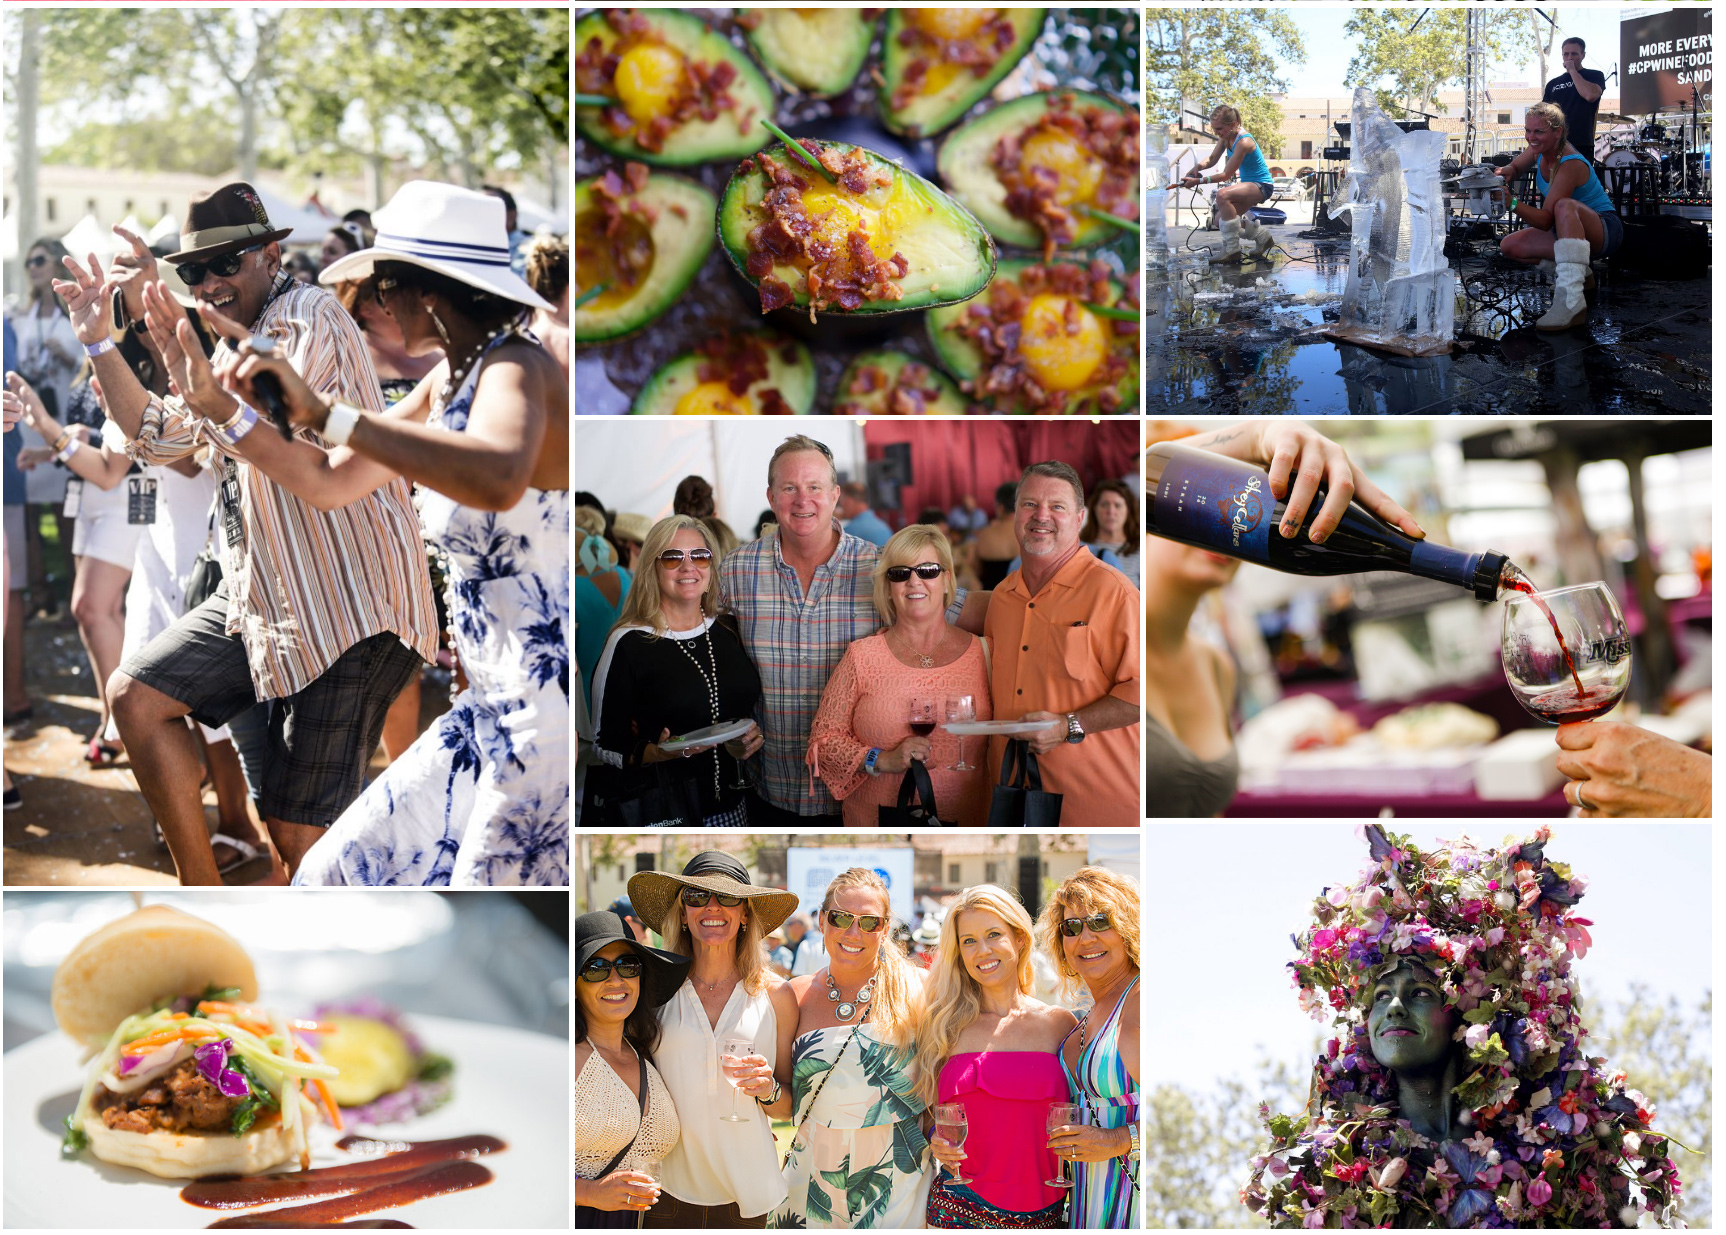 Casa Pacifica Wows the Foodies at Their Annual Wine, Food, and Brew Festival in Camarillo